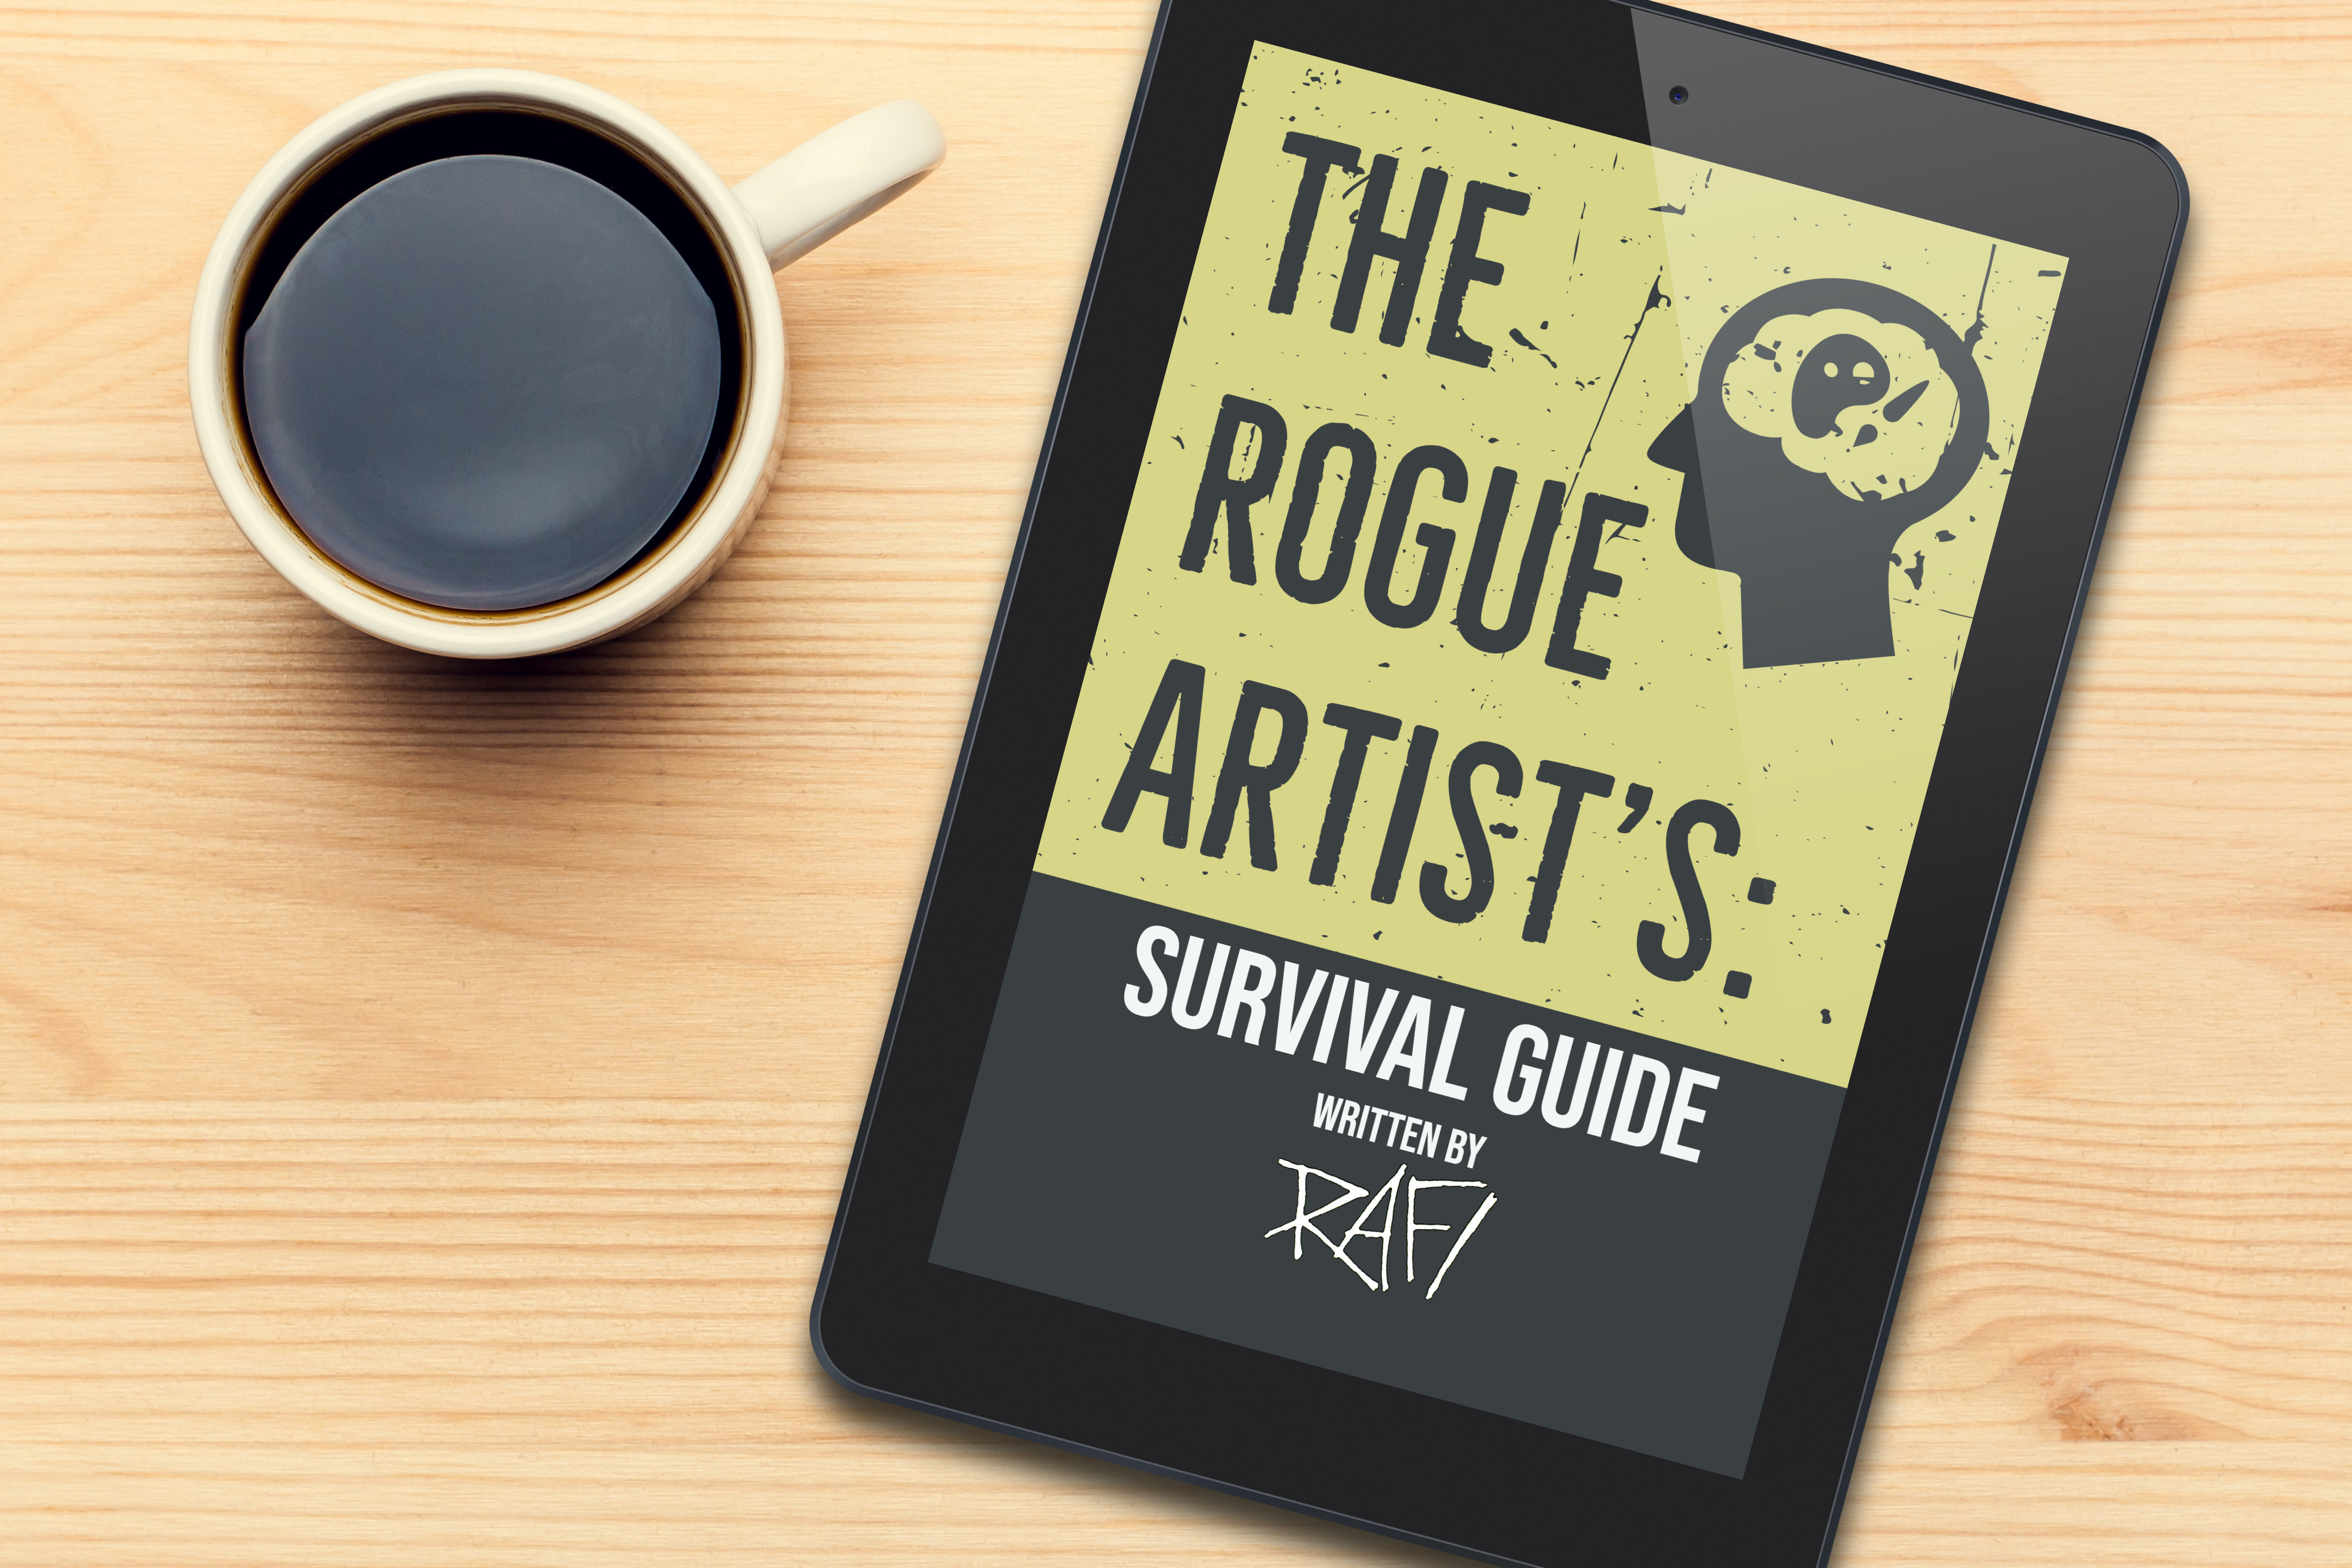 The Rogue Artist S Survival Guide By Rafi Perez Indiegogo